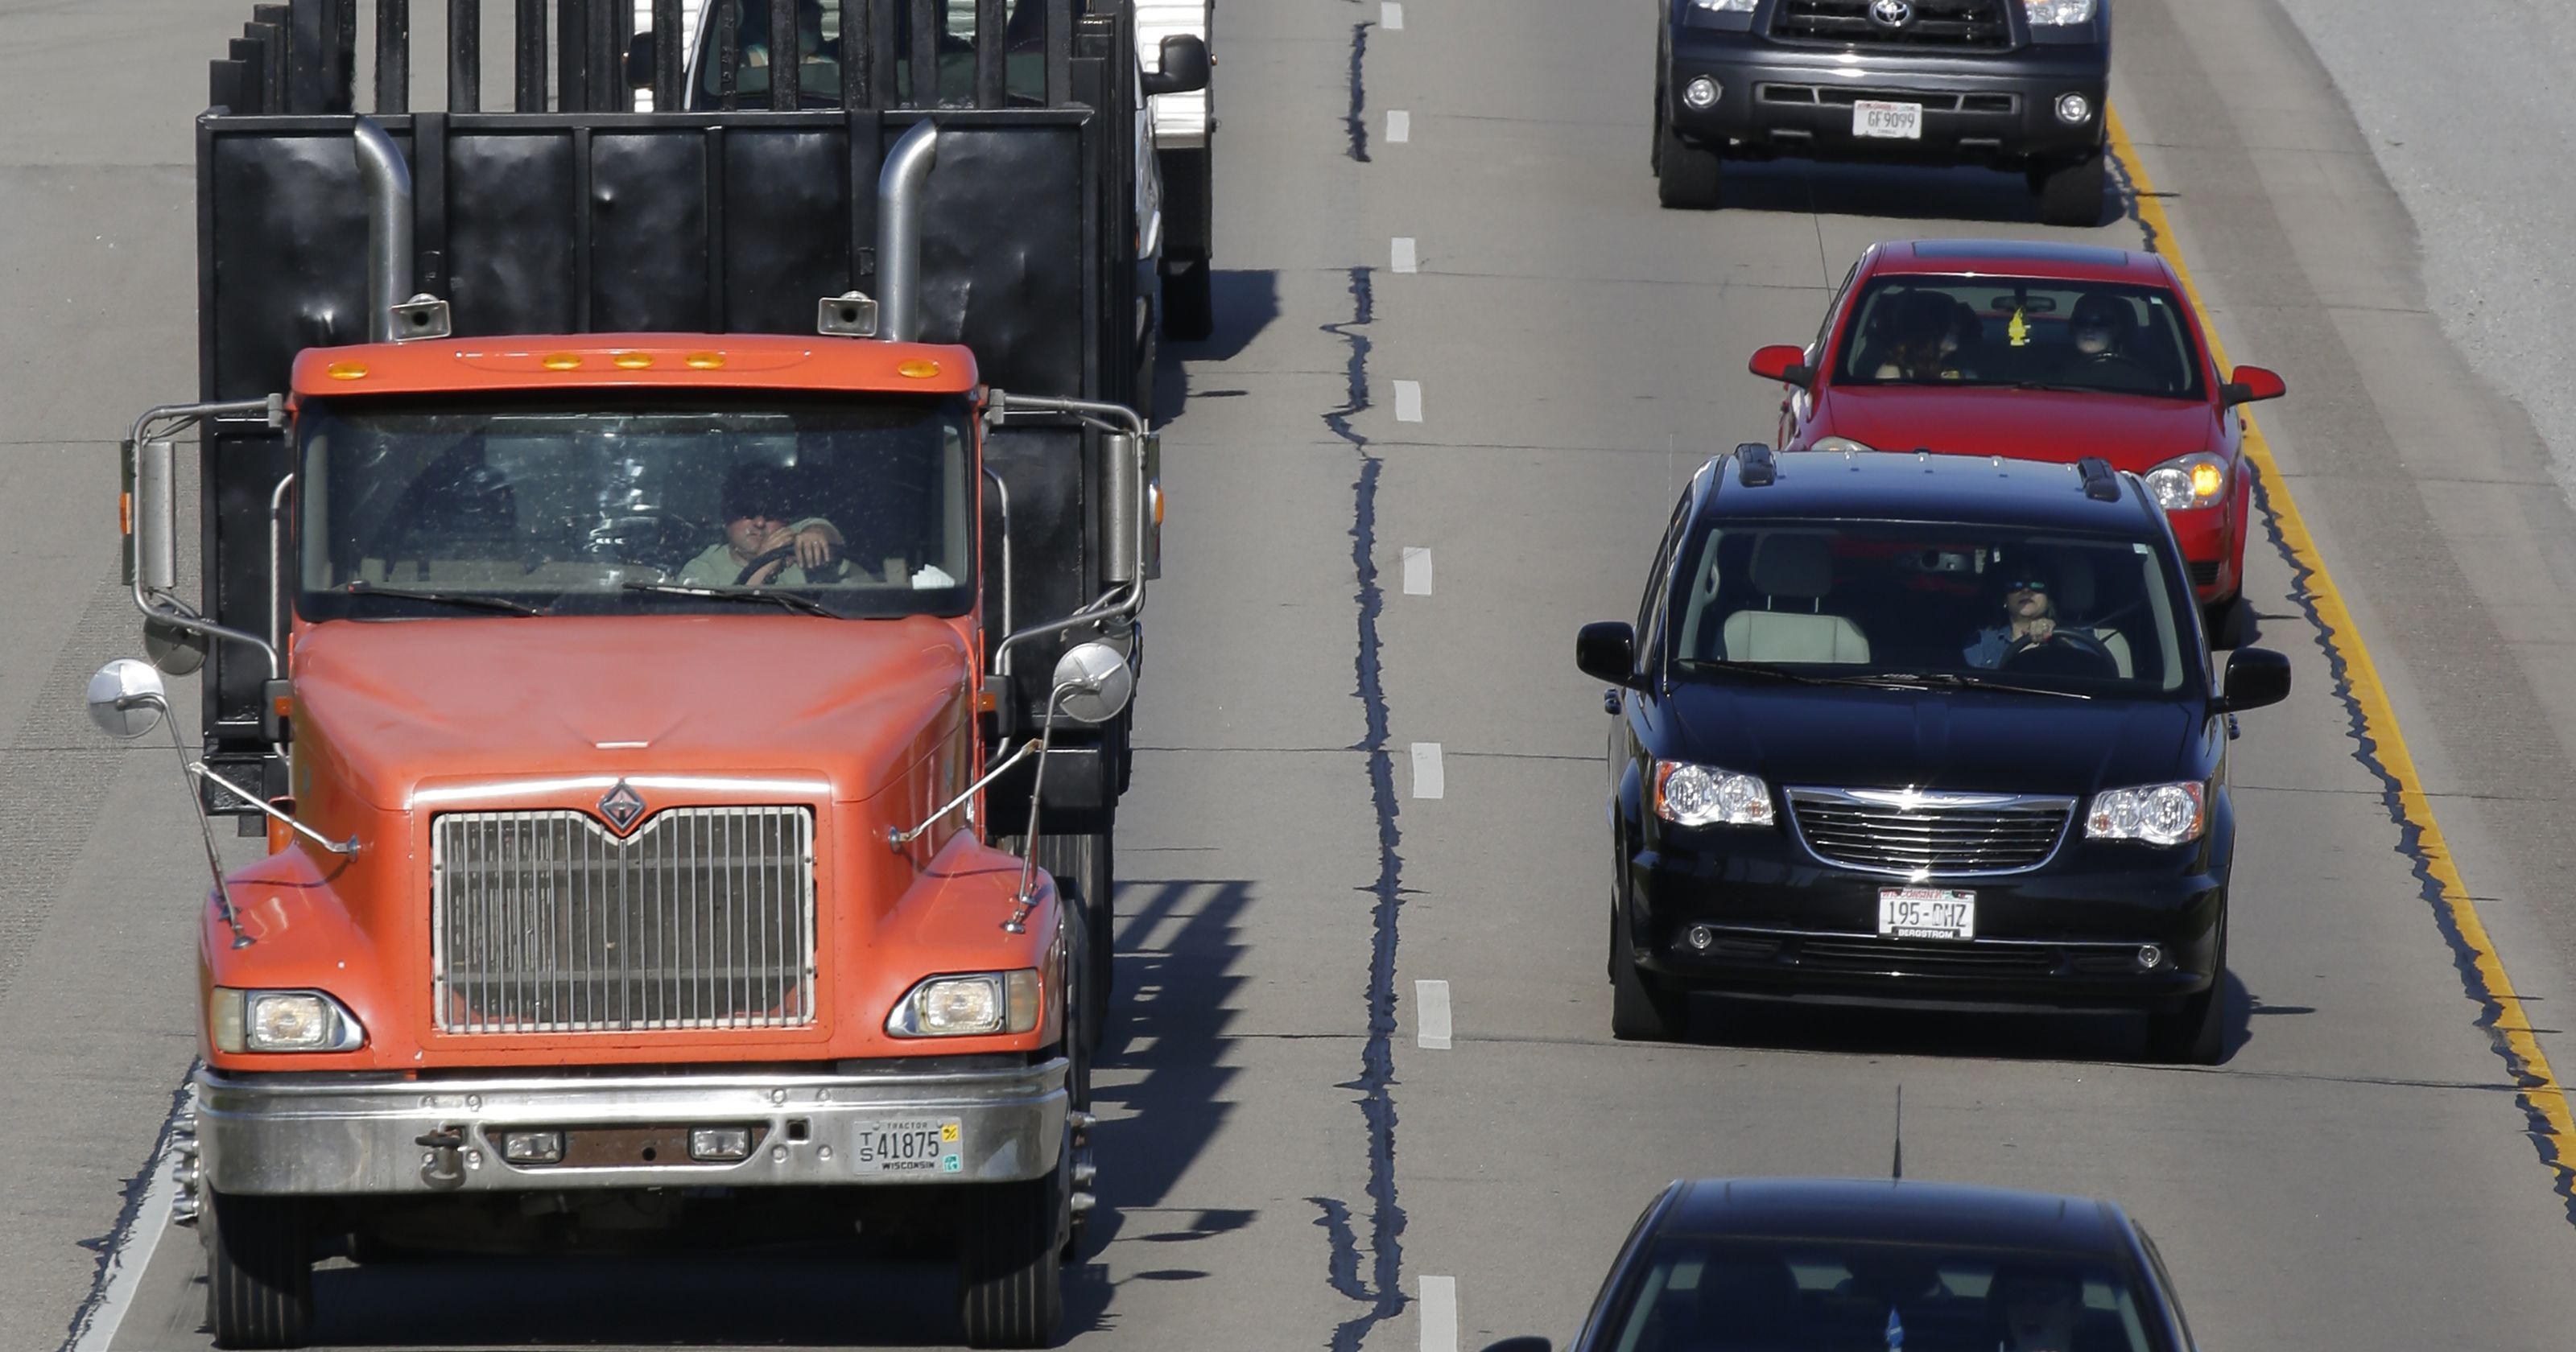 No insurance? No problem for thousands of drivers